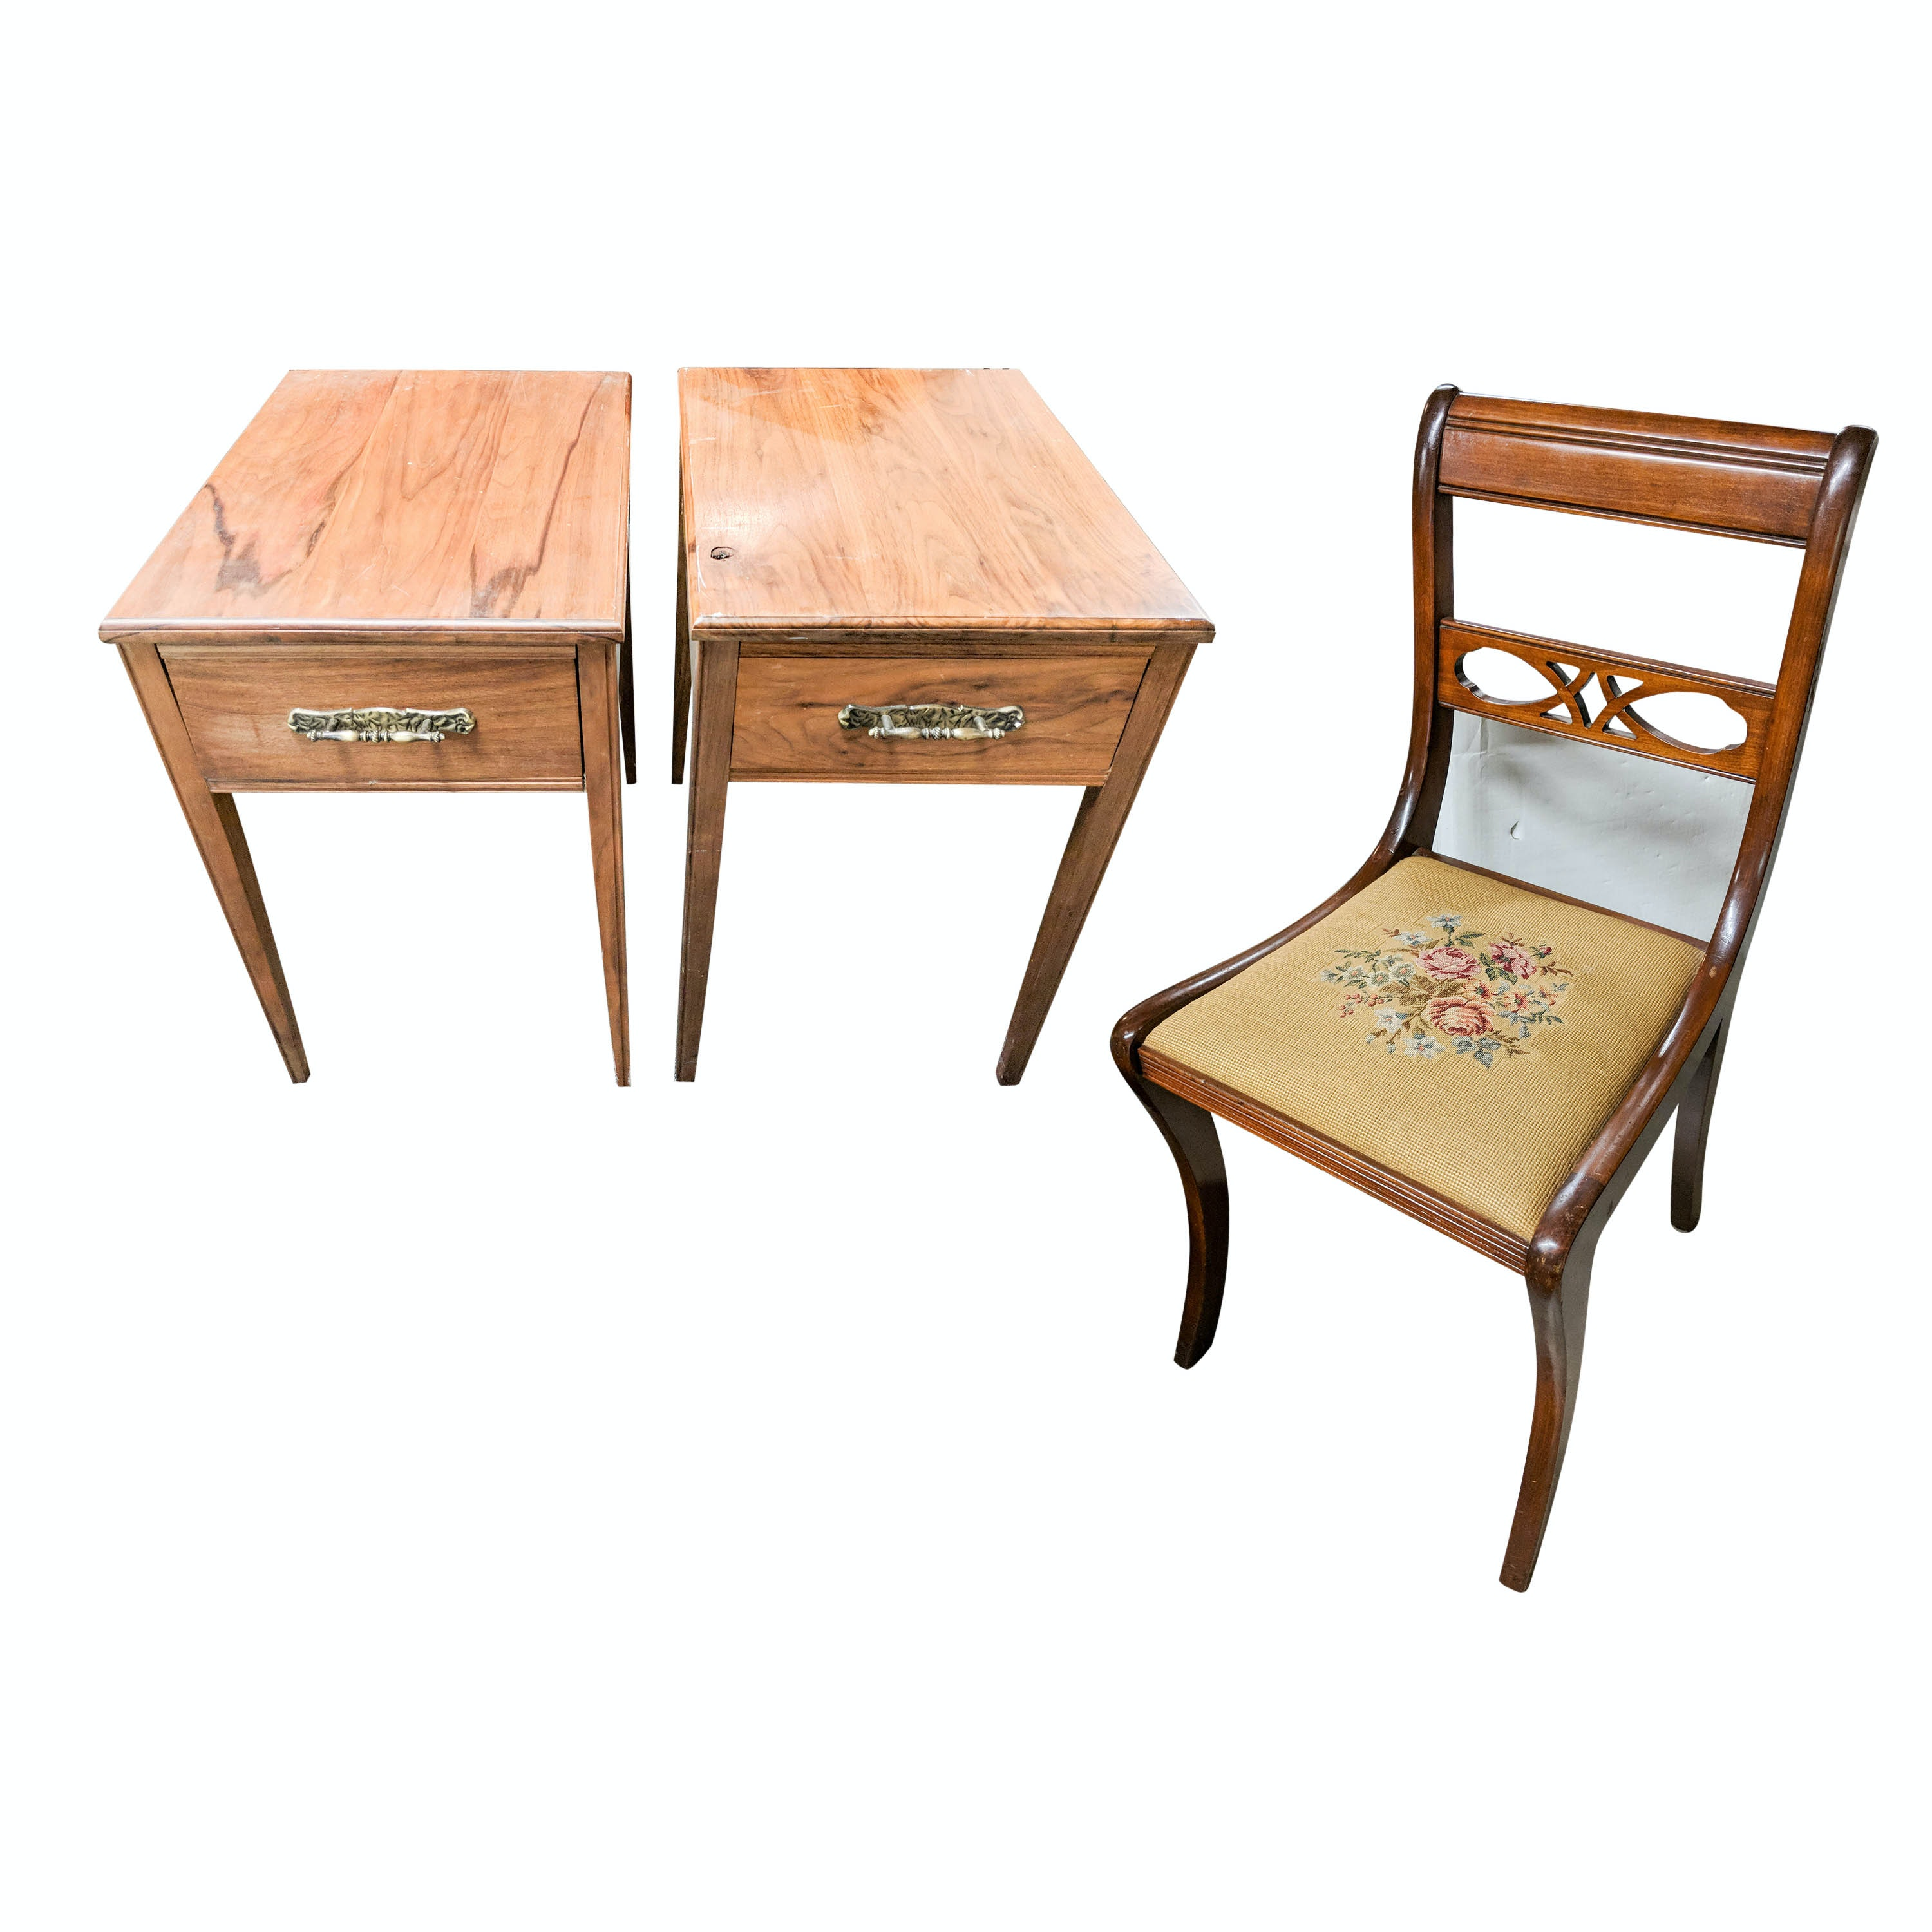 Vintage Needlepoint Chair and Handcrafted Walnut End Tables